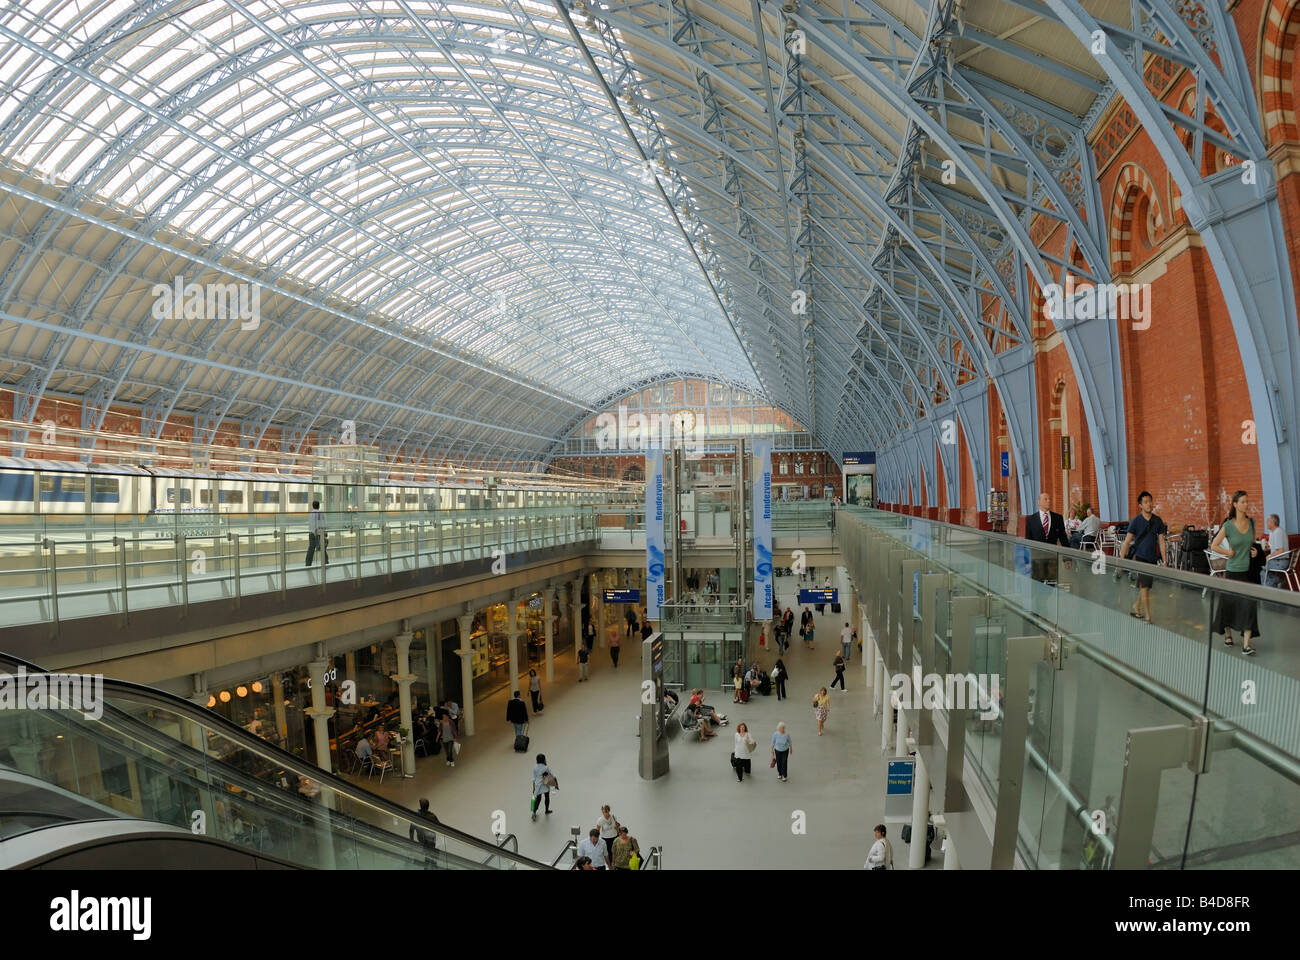 Interior of St Pancras Station,  London - Stock Image